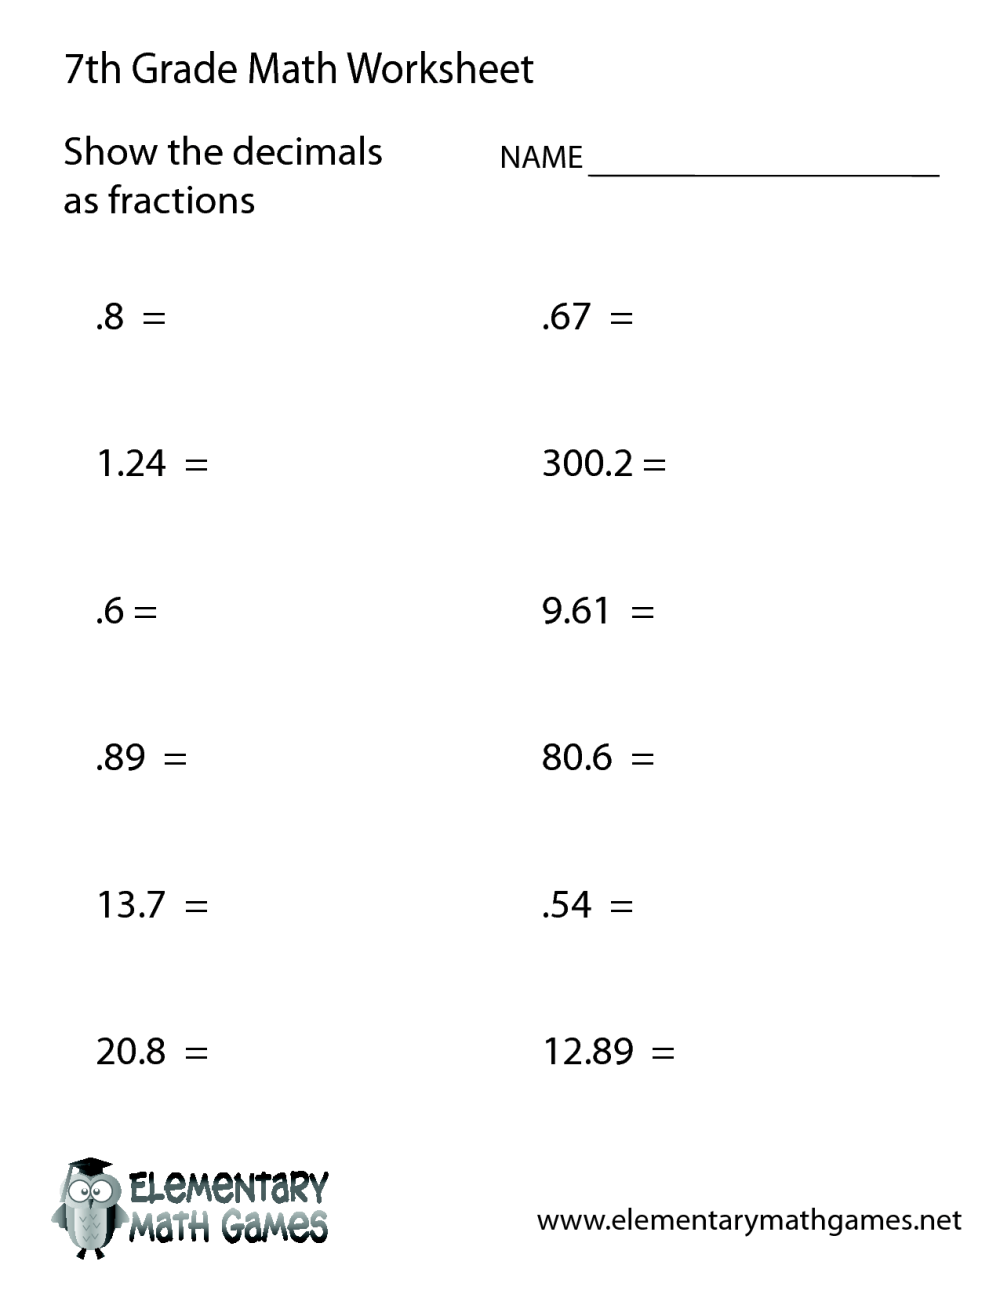 medium resolution of 7th grade math worksheets Frequency table